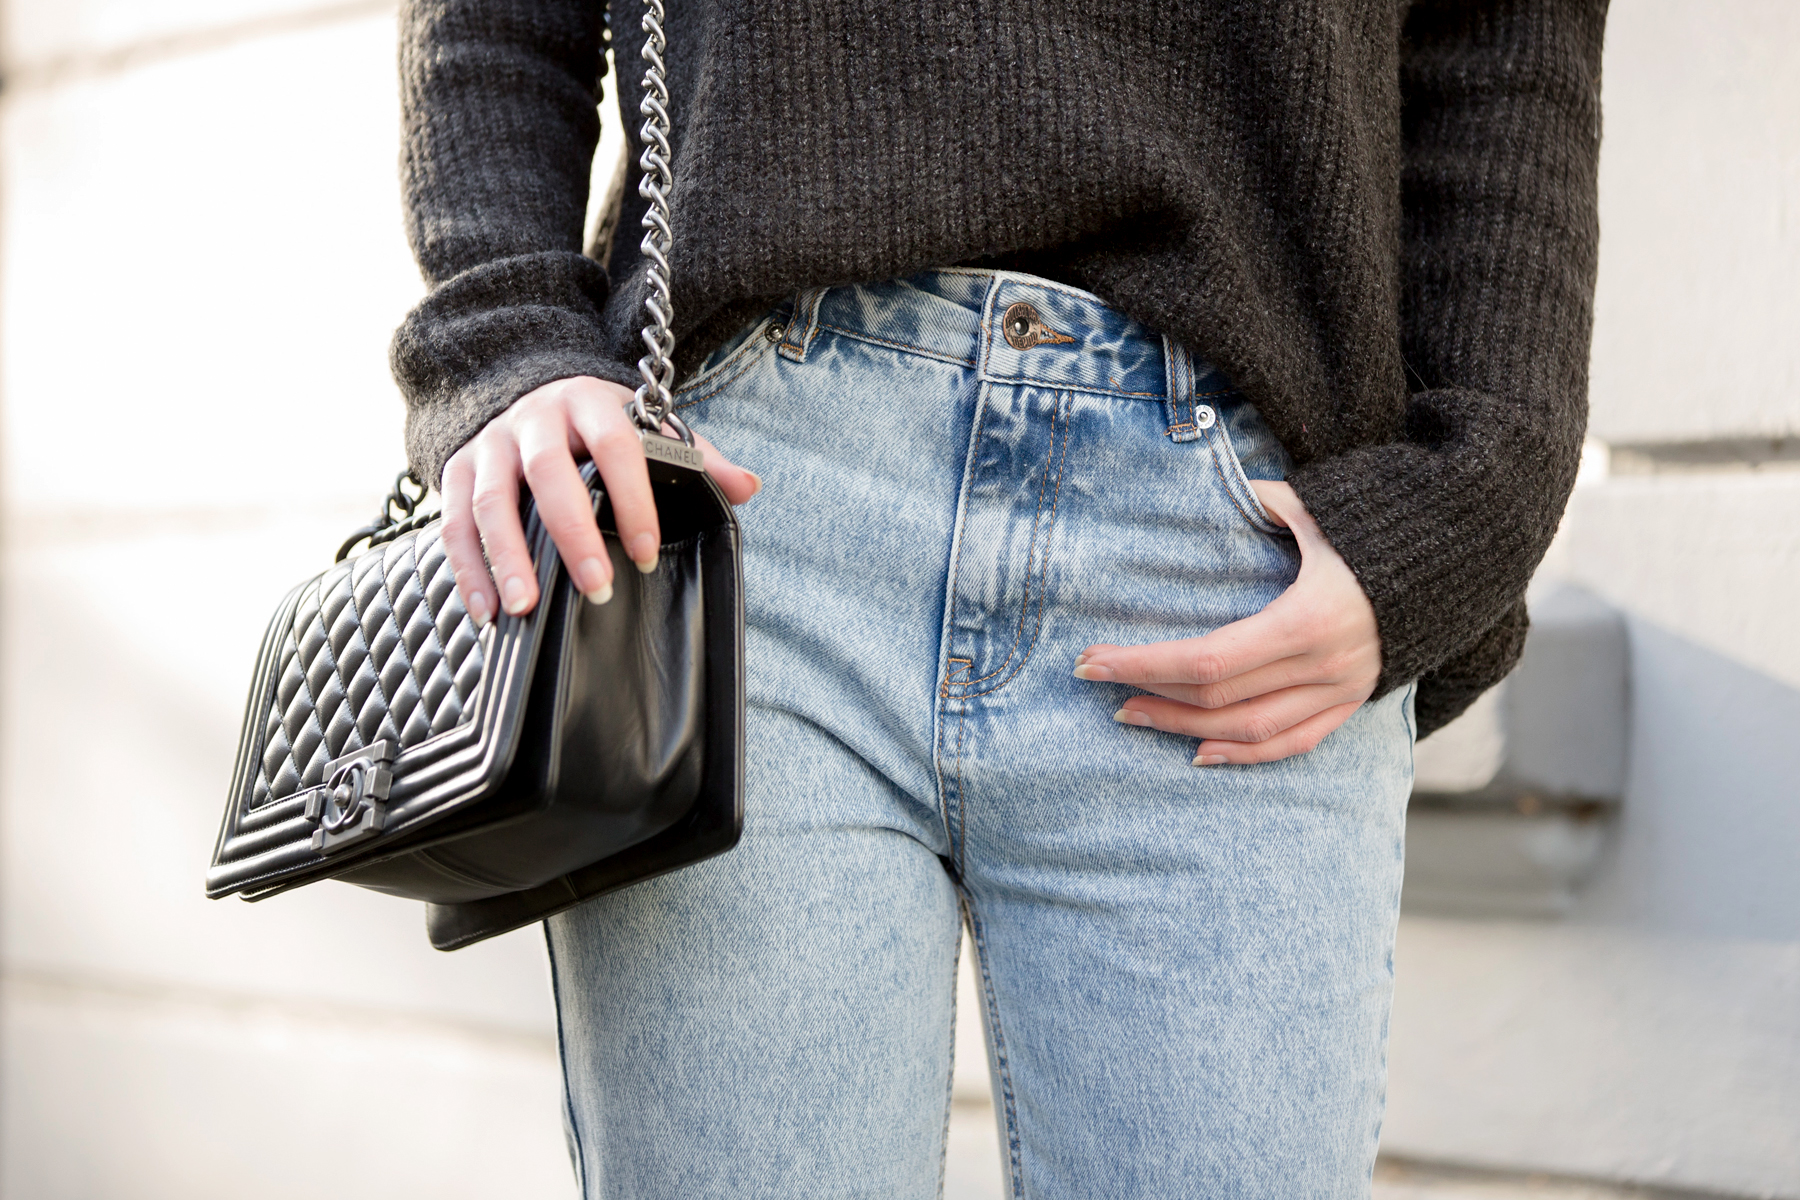 ootd outfit styling mom jeans momjeans pull&bear grey knit knitwear lace chanel chanel boybag leboy asos striped high heels glamour look relax cozy winter düsseldorf cats & dogs blog ricarda schernus fashionblogger 4